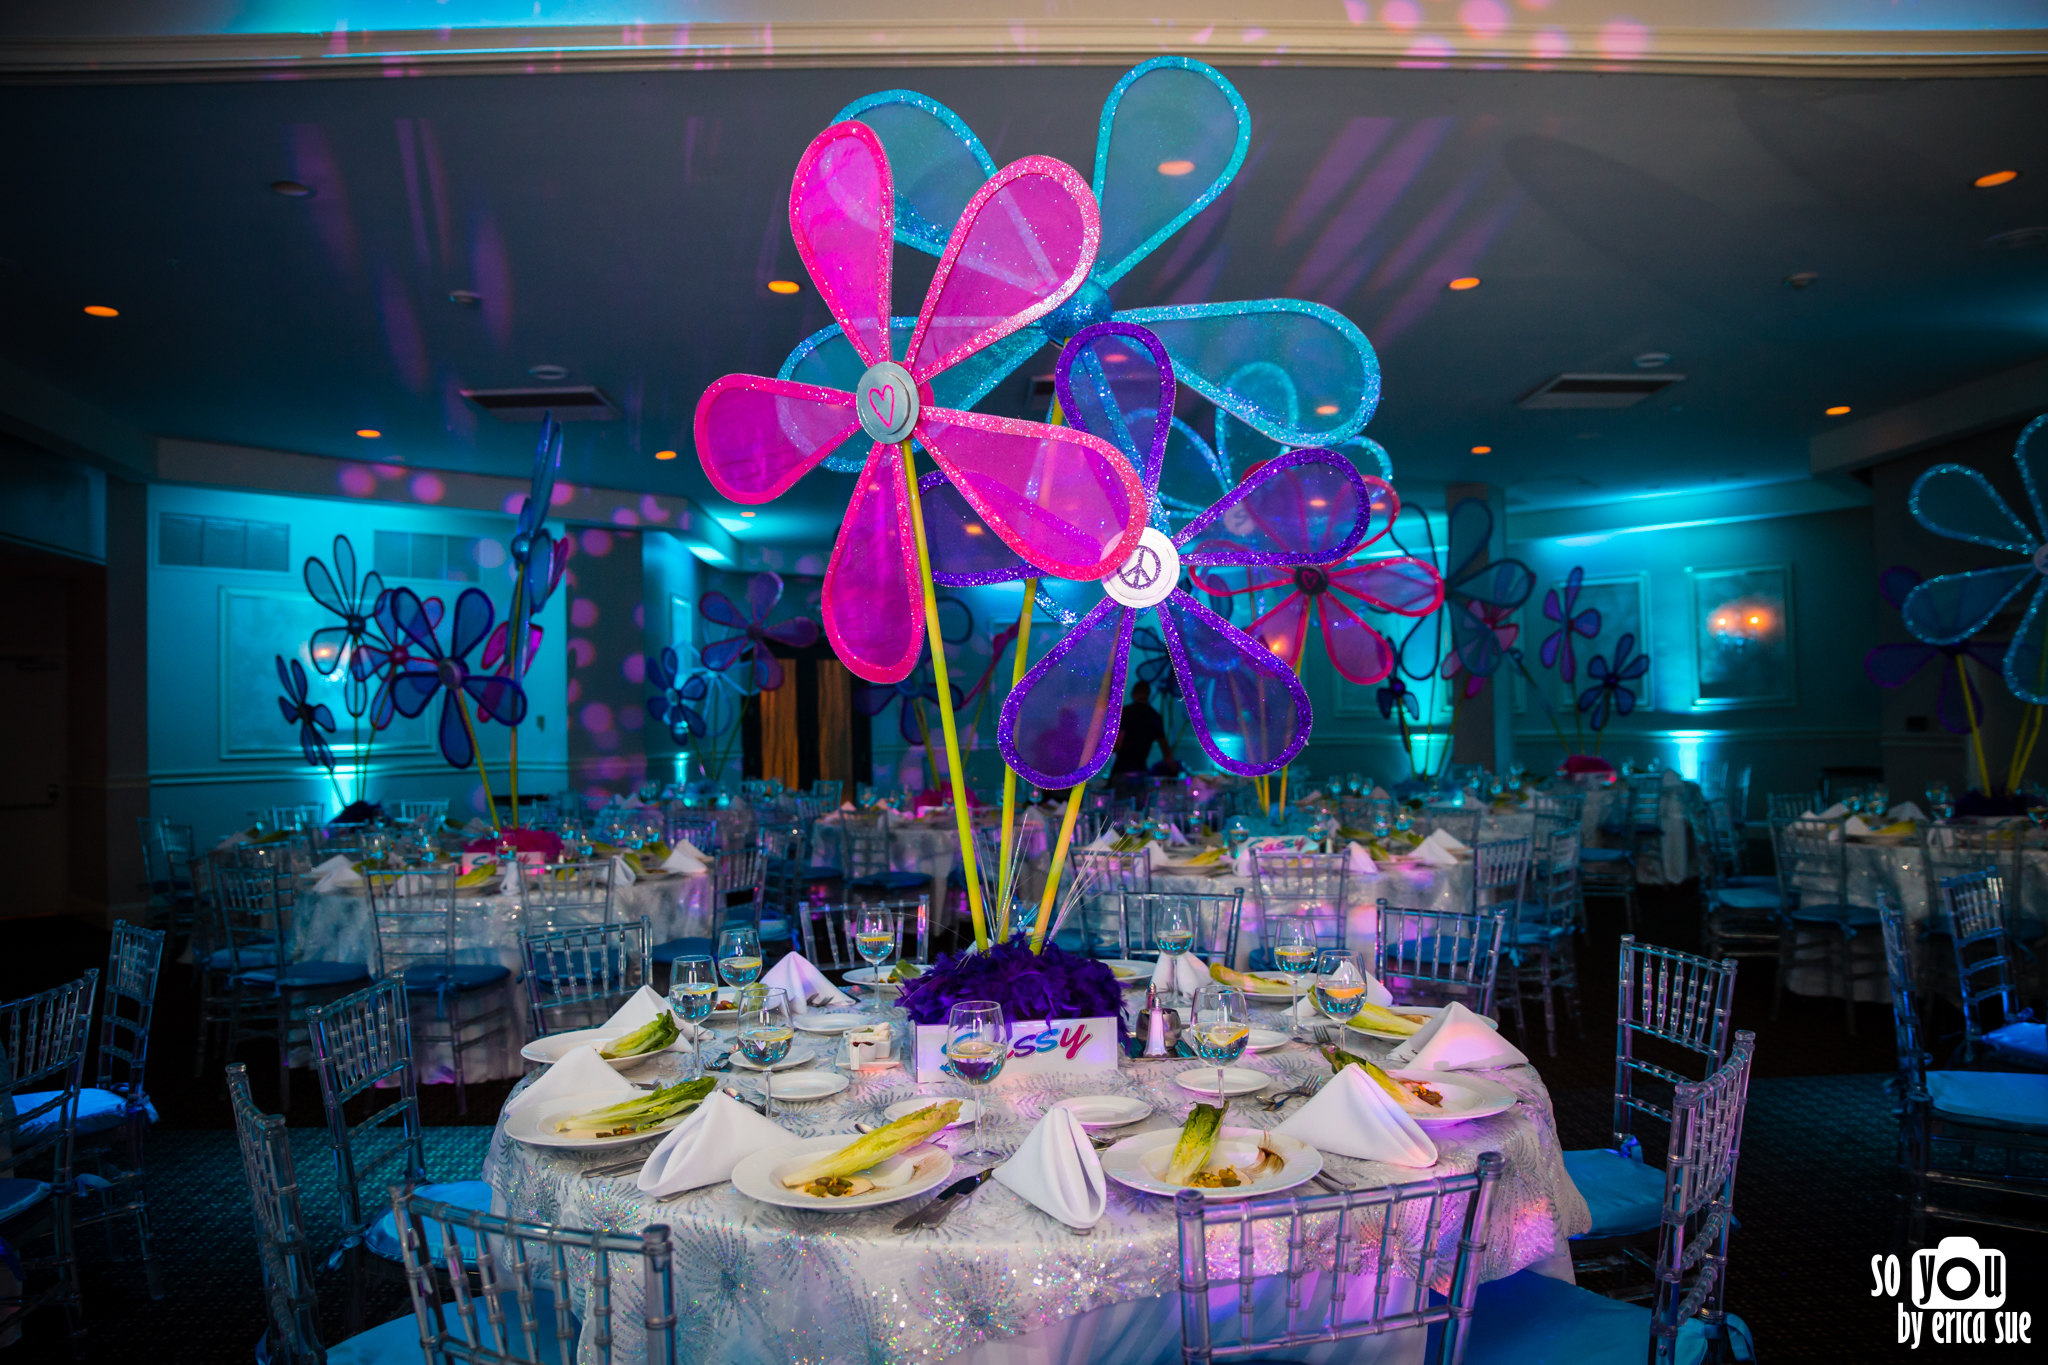 bat-mitzvah-photography-south-florida-broward-kol-ami-plantation-so-you-by-erica-sue-3119.jpg